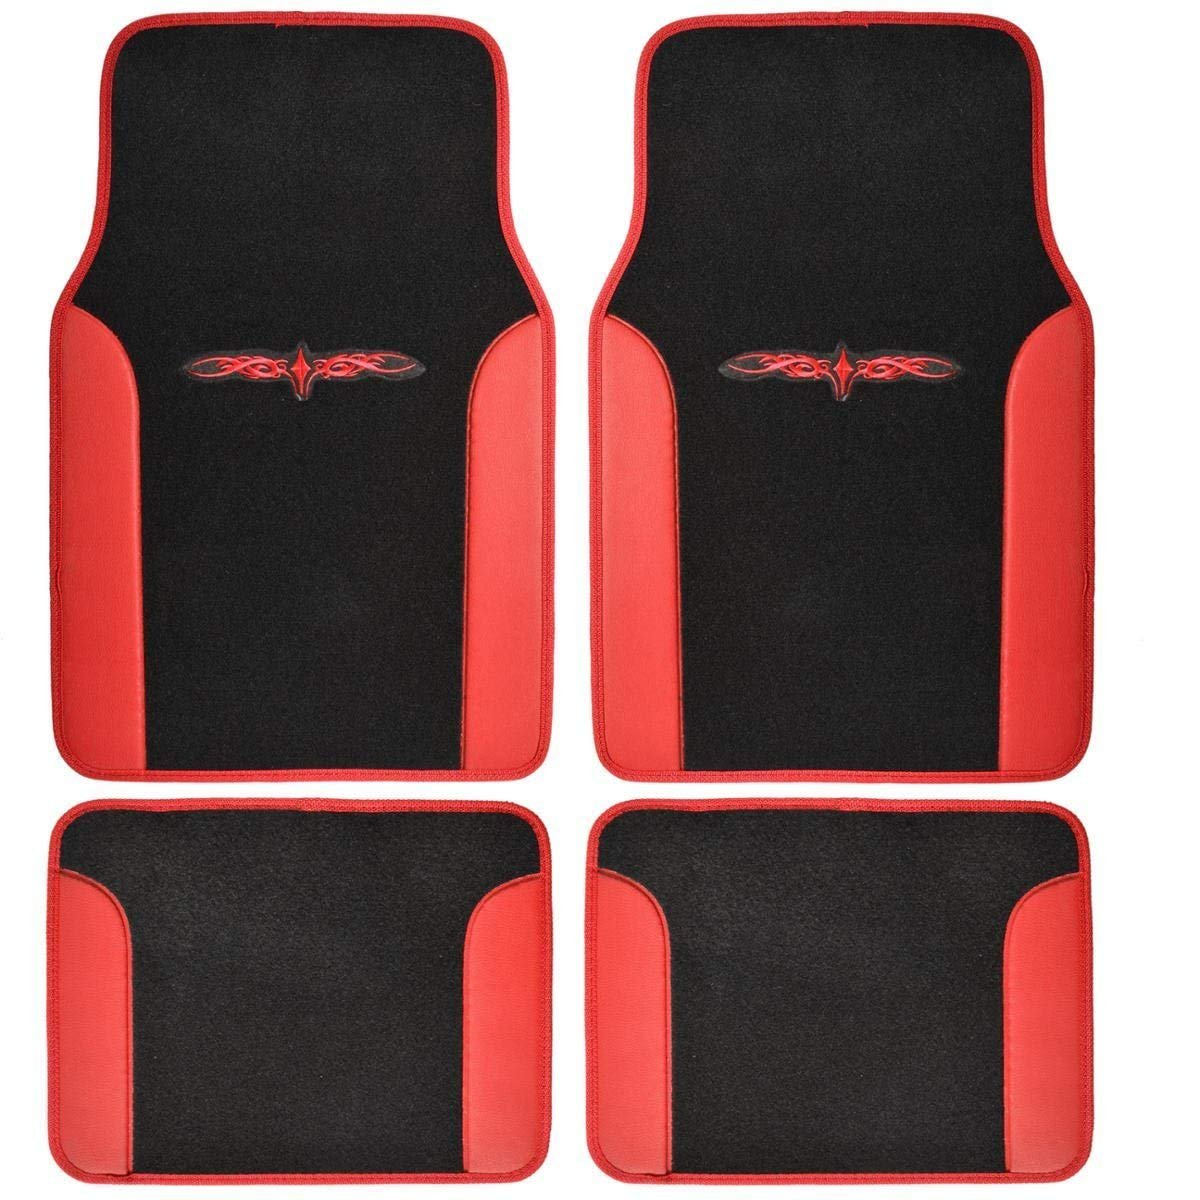 A Set of 4 Universal Fit Plush Carpet with Vinyl Trim Floor Mats For Cars / Trucks - Tribal Red